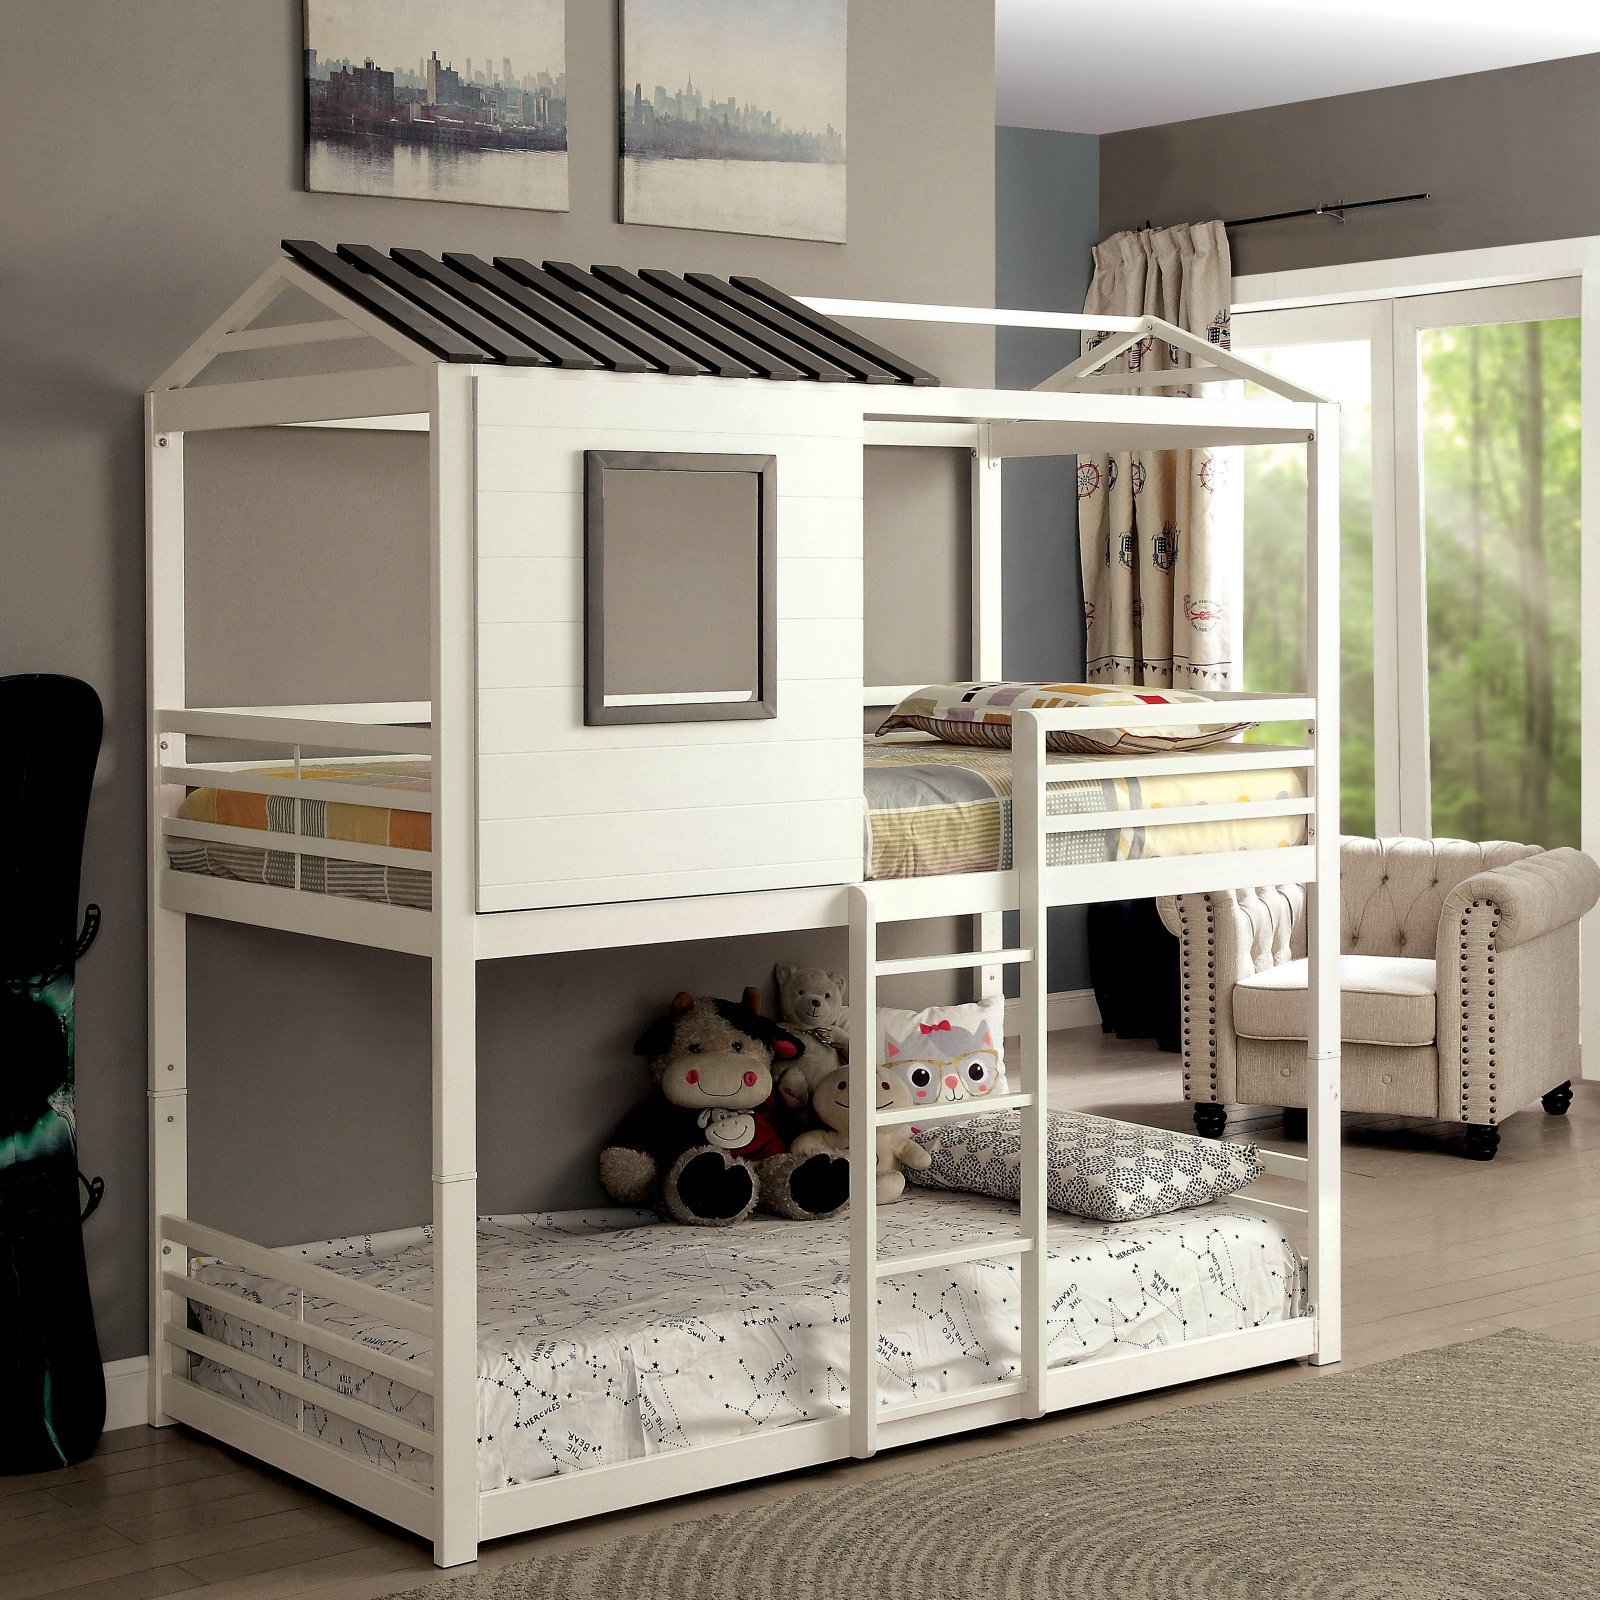 Furniture of America Hansel Playhouse Twin over Twin Bunk Bed